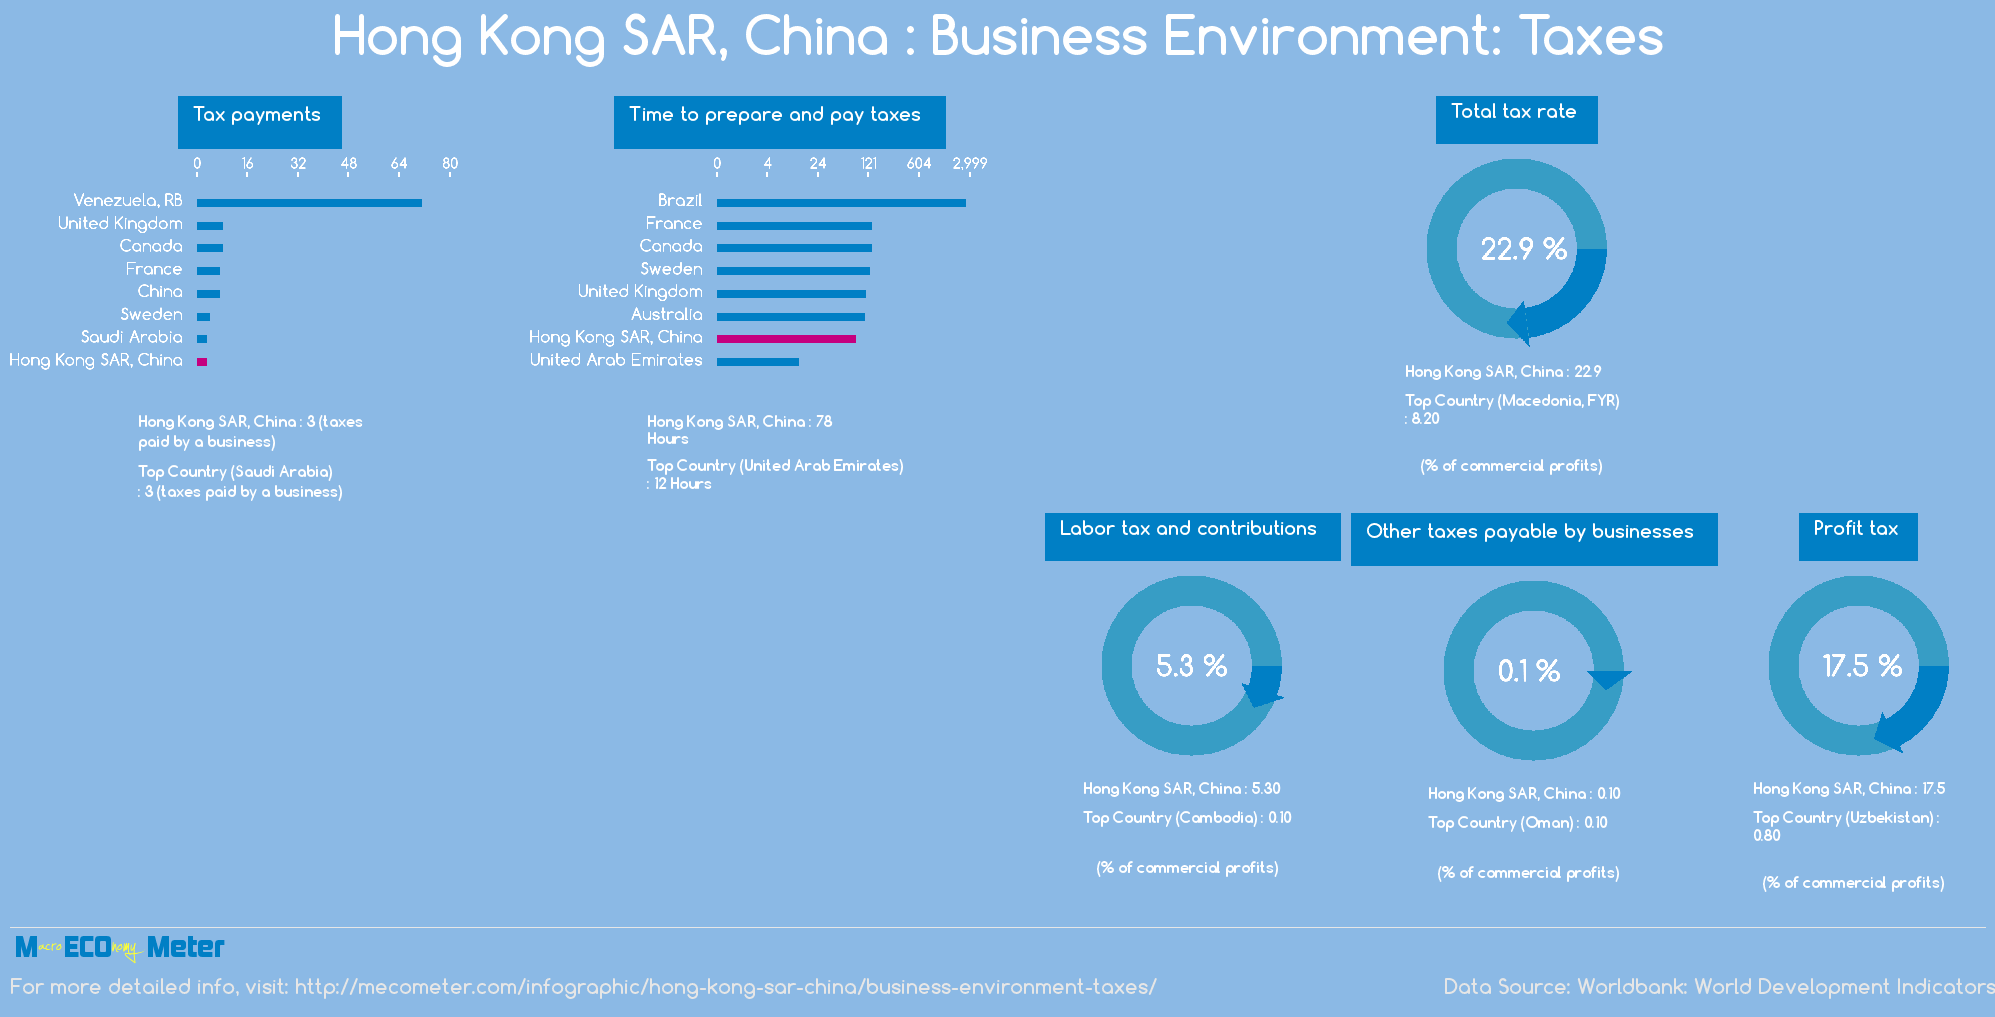 Hong Kong SAR, China : Business Environment: Taxes